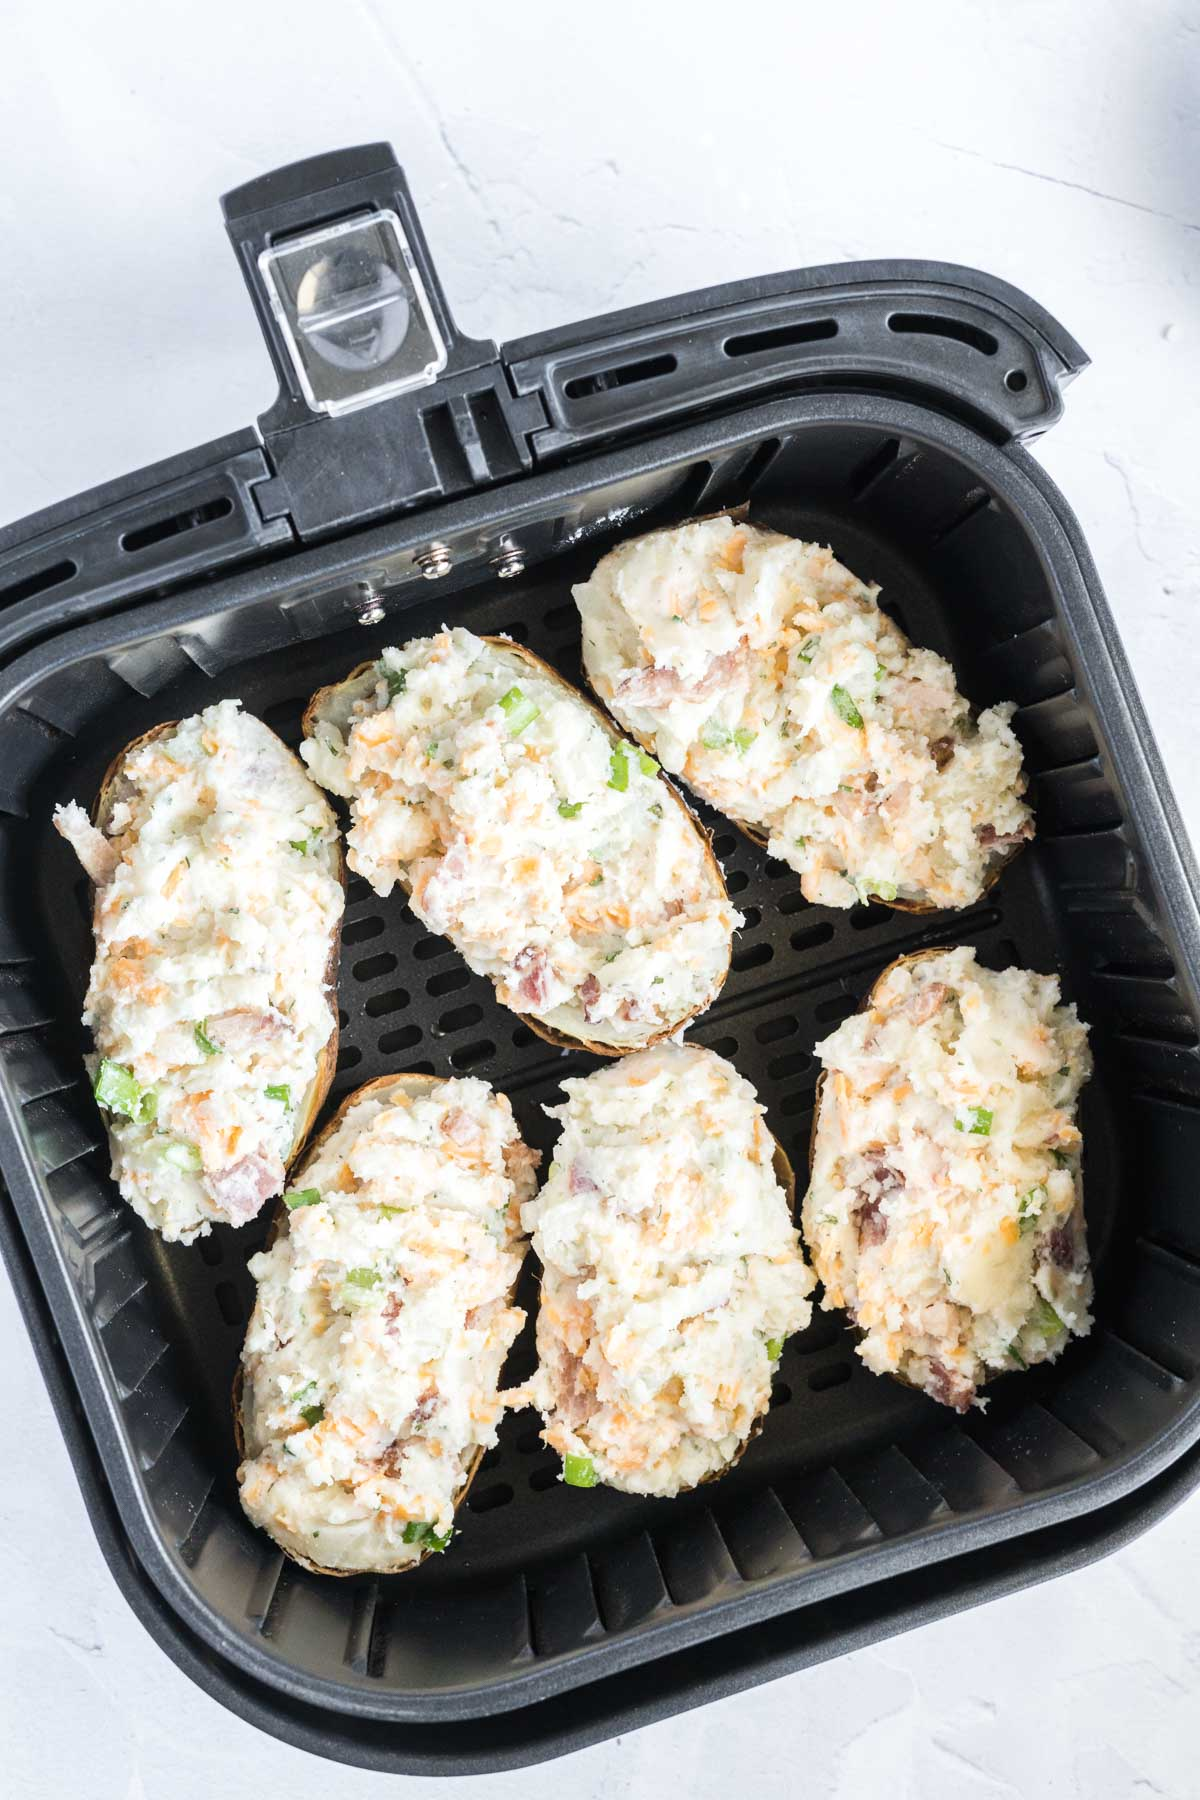 Six potato halves stuffed with filling in an air fryer basket.